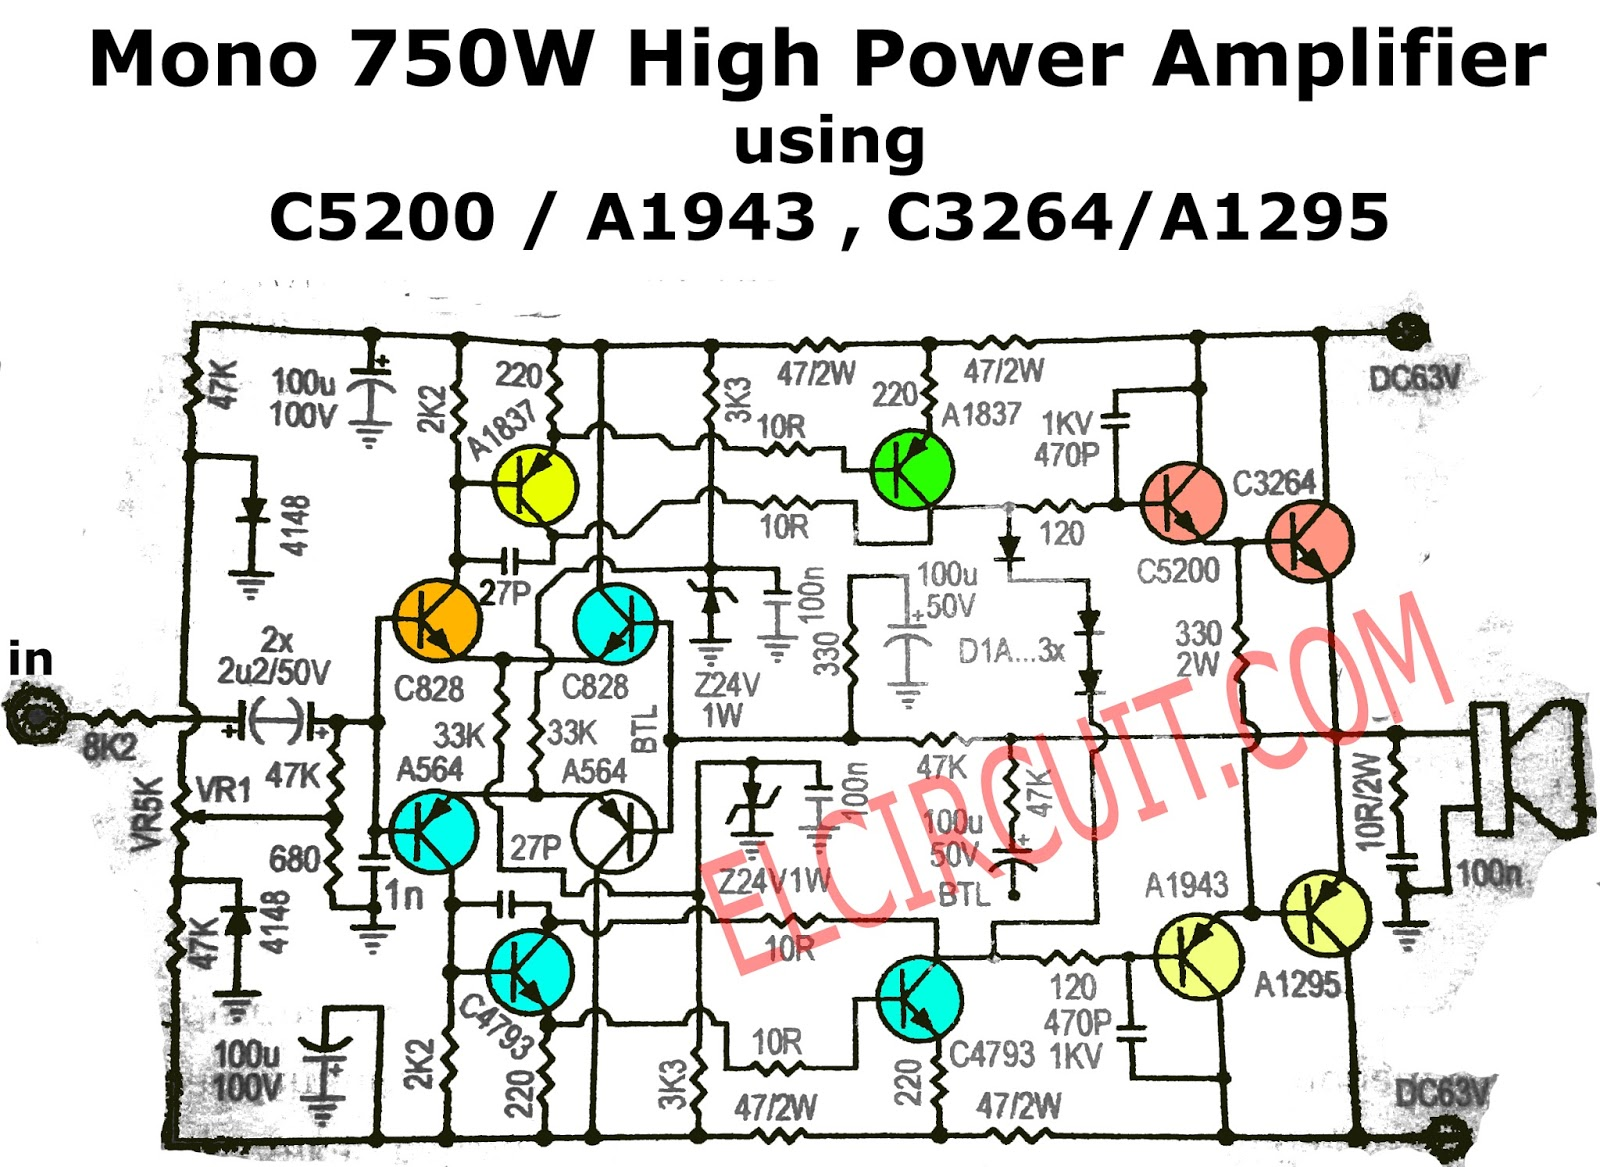 Mono%2B750W%2BHigh%2BPower%2BAmplifier 750w mono power amplifier schematic and pcb electronic circuit amplifier schematic diagram at panicattacktreatment.co